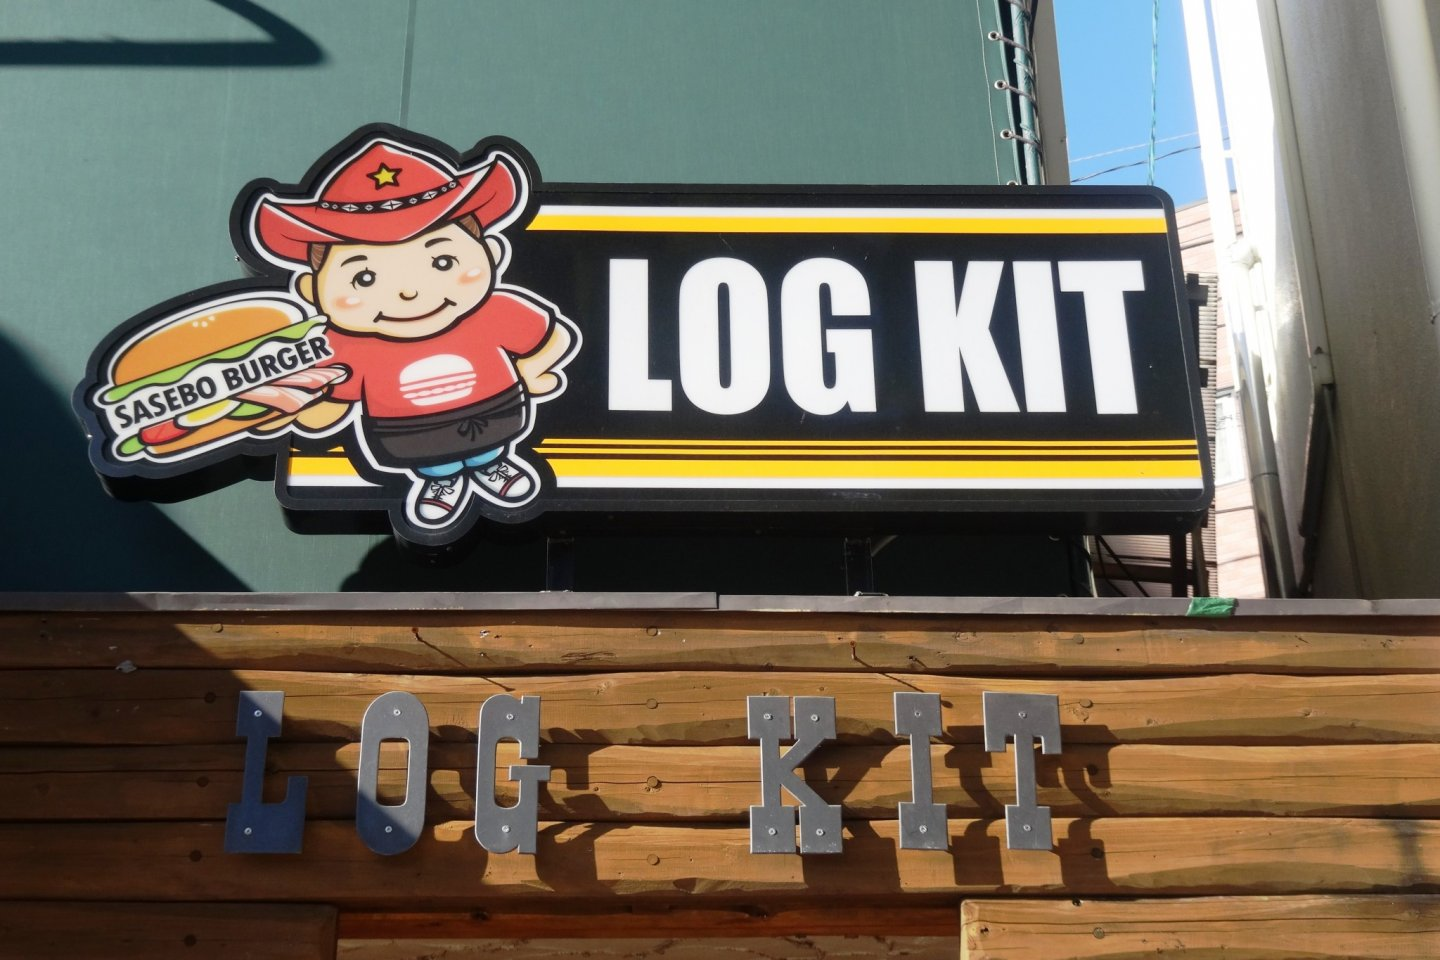 Log Kit's sign is easy to see as soon as you come off of the expressway